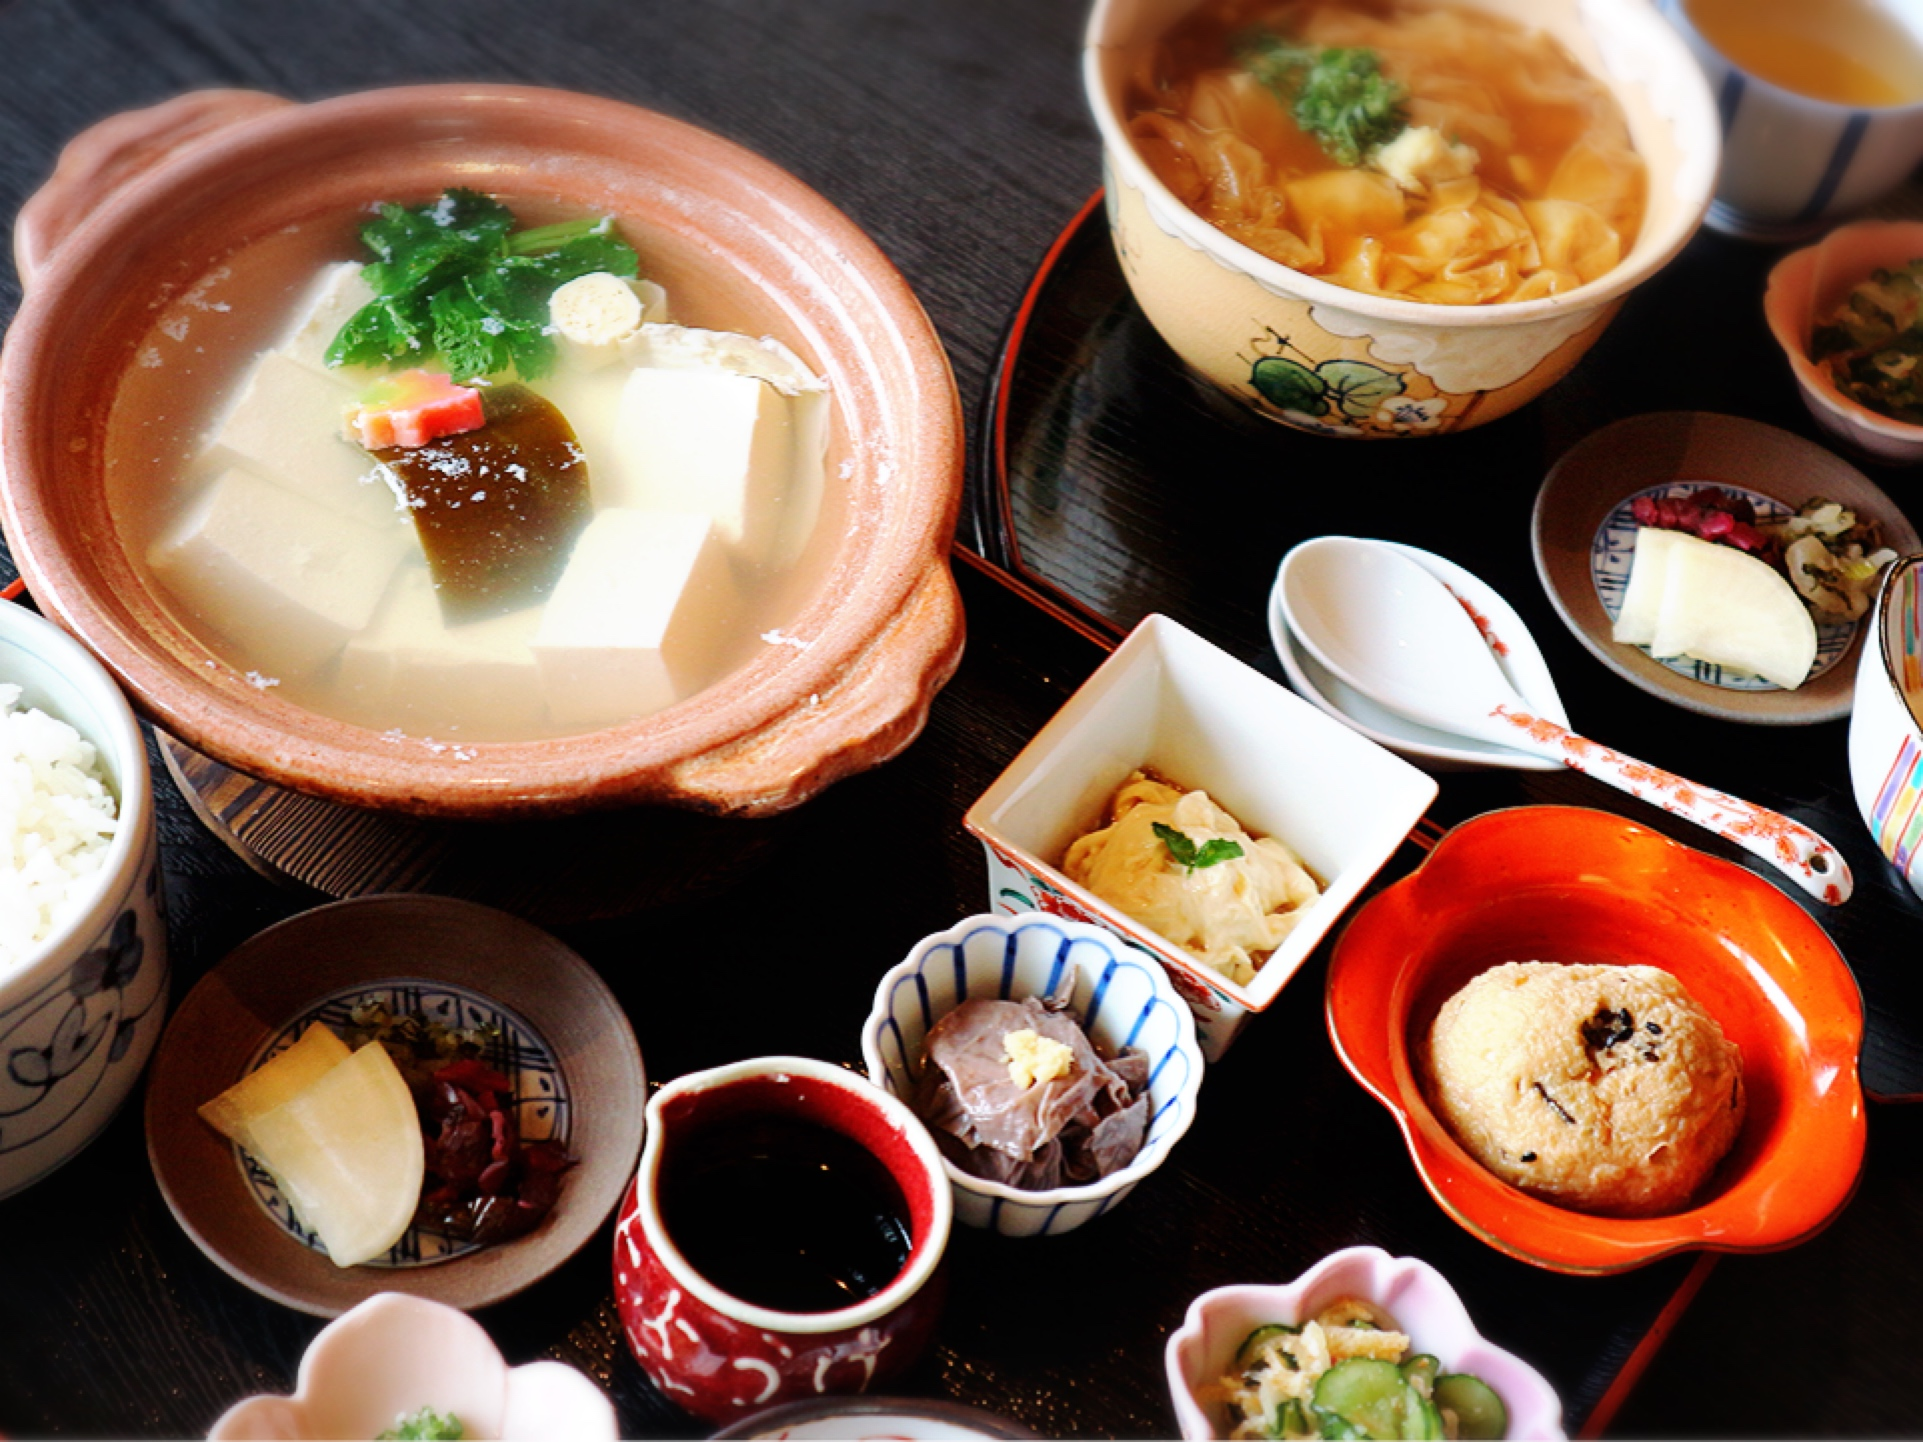 Rich variations of Tofu cuisine